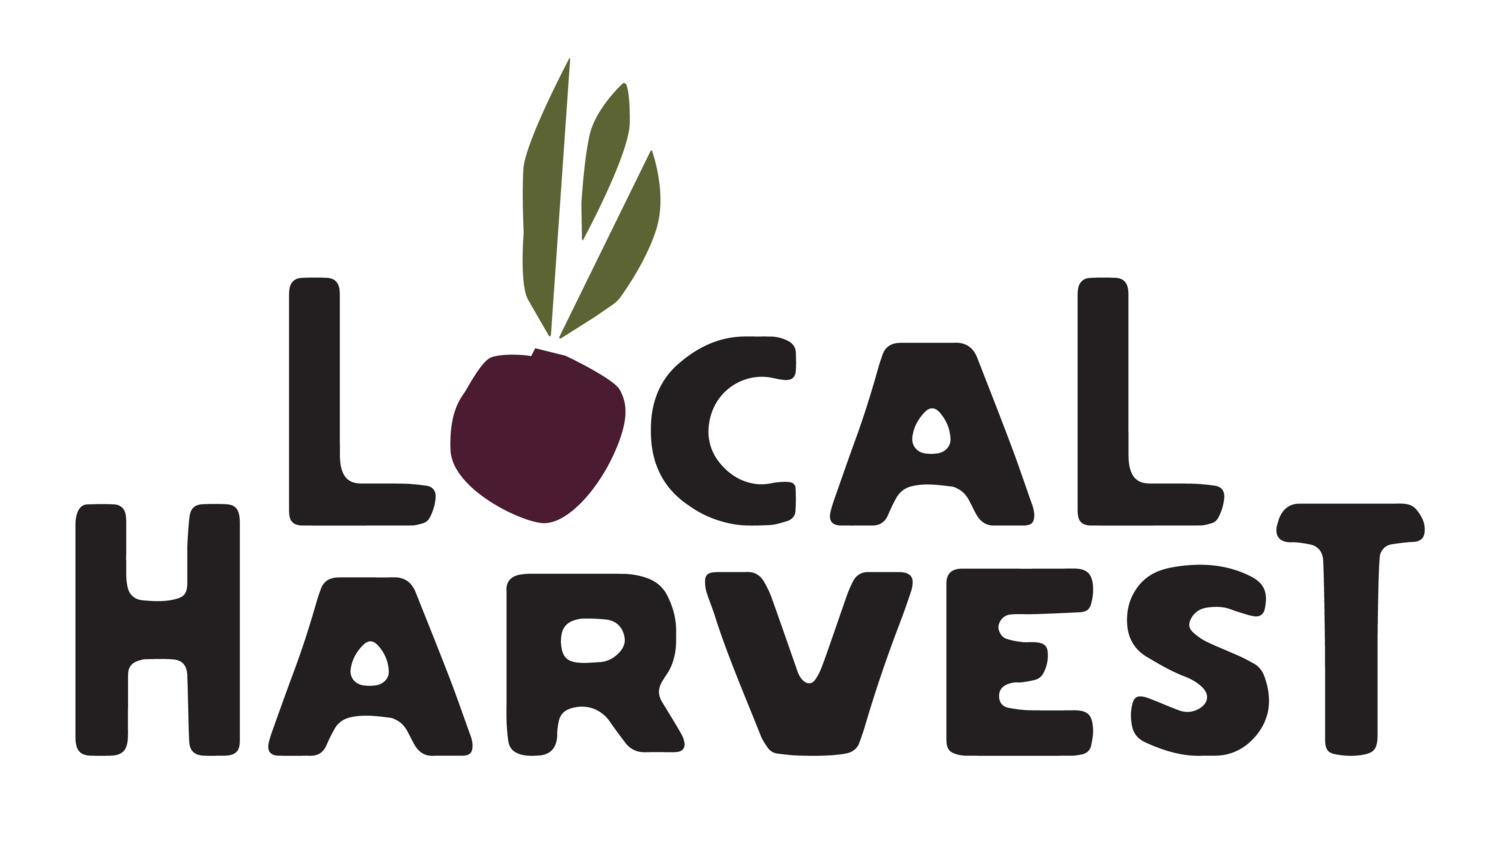 Local Harvest Market logo